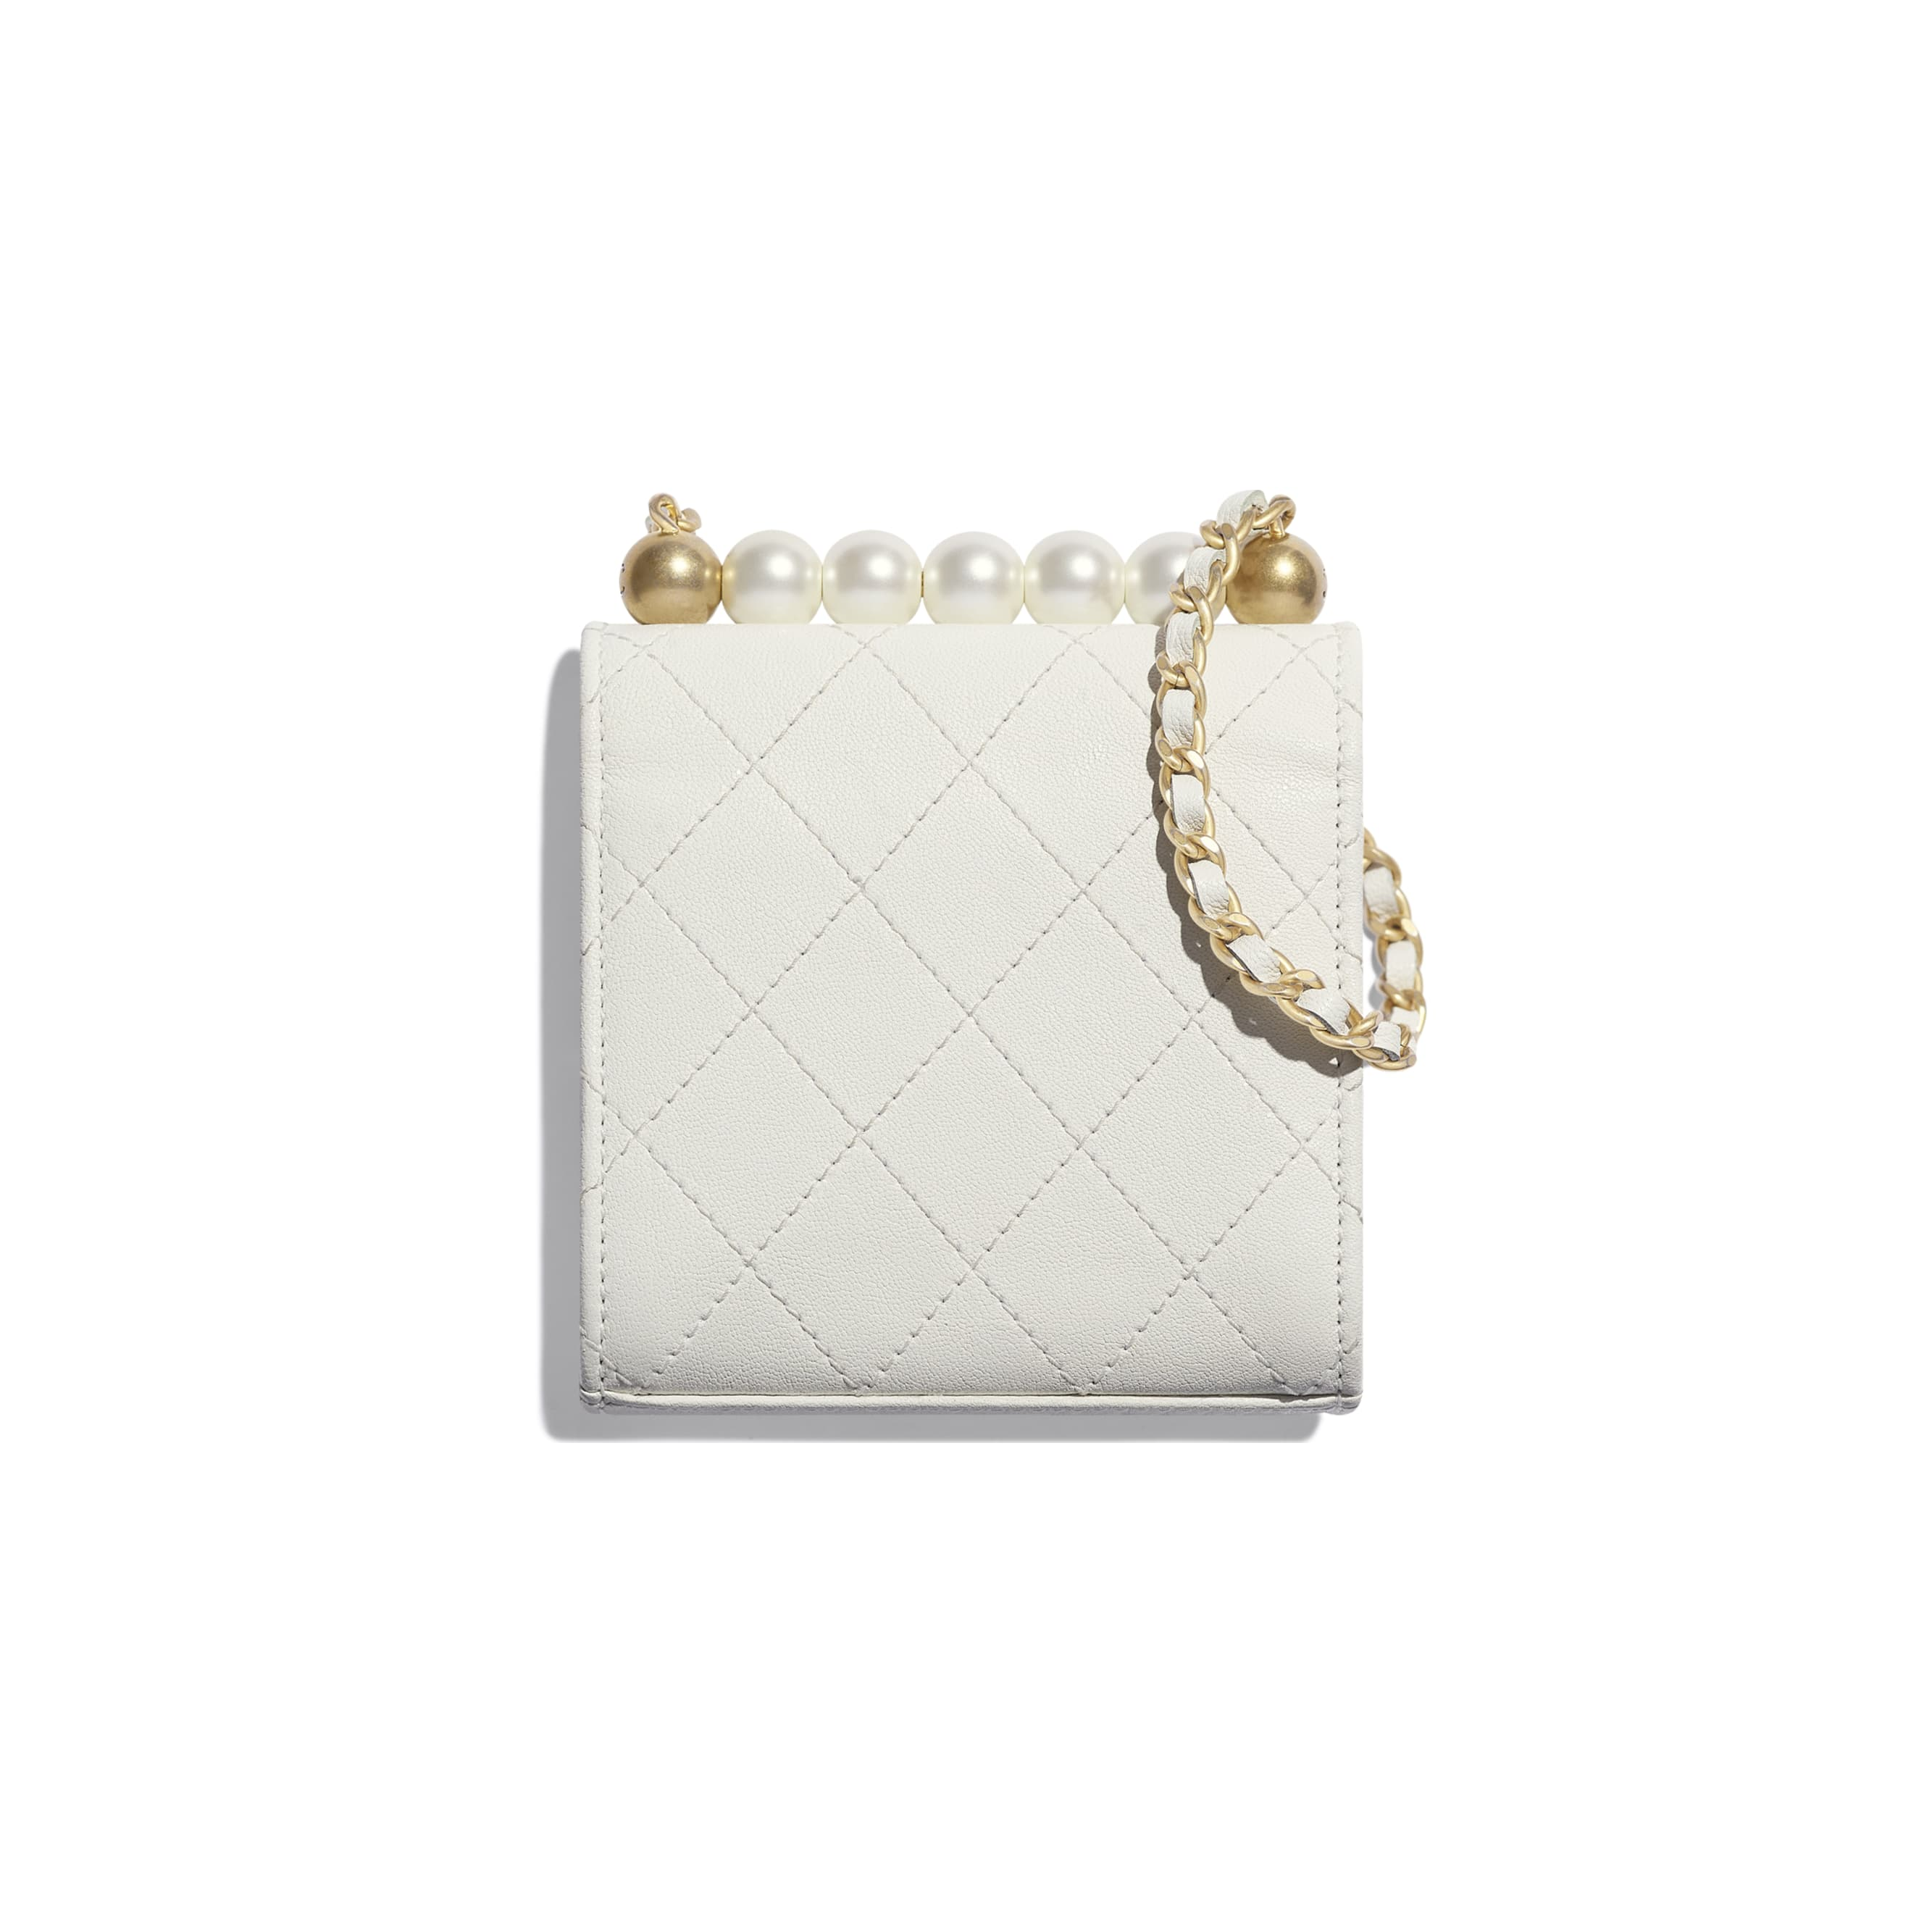 Clutch With Chain - White - Goatskin, Imitation Pearls & Gold-Tone Metal - Alternative view - see standard sized version